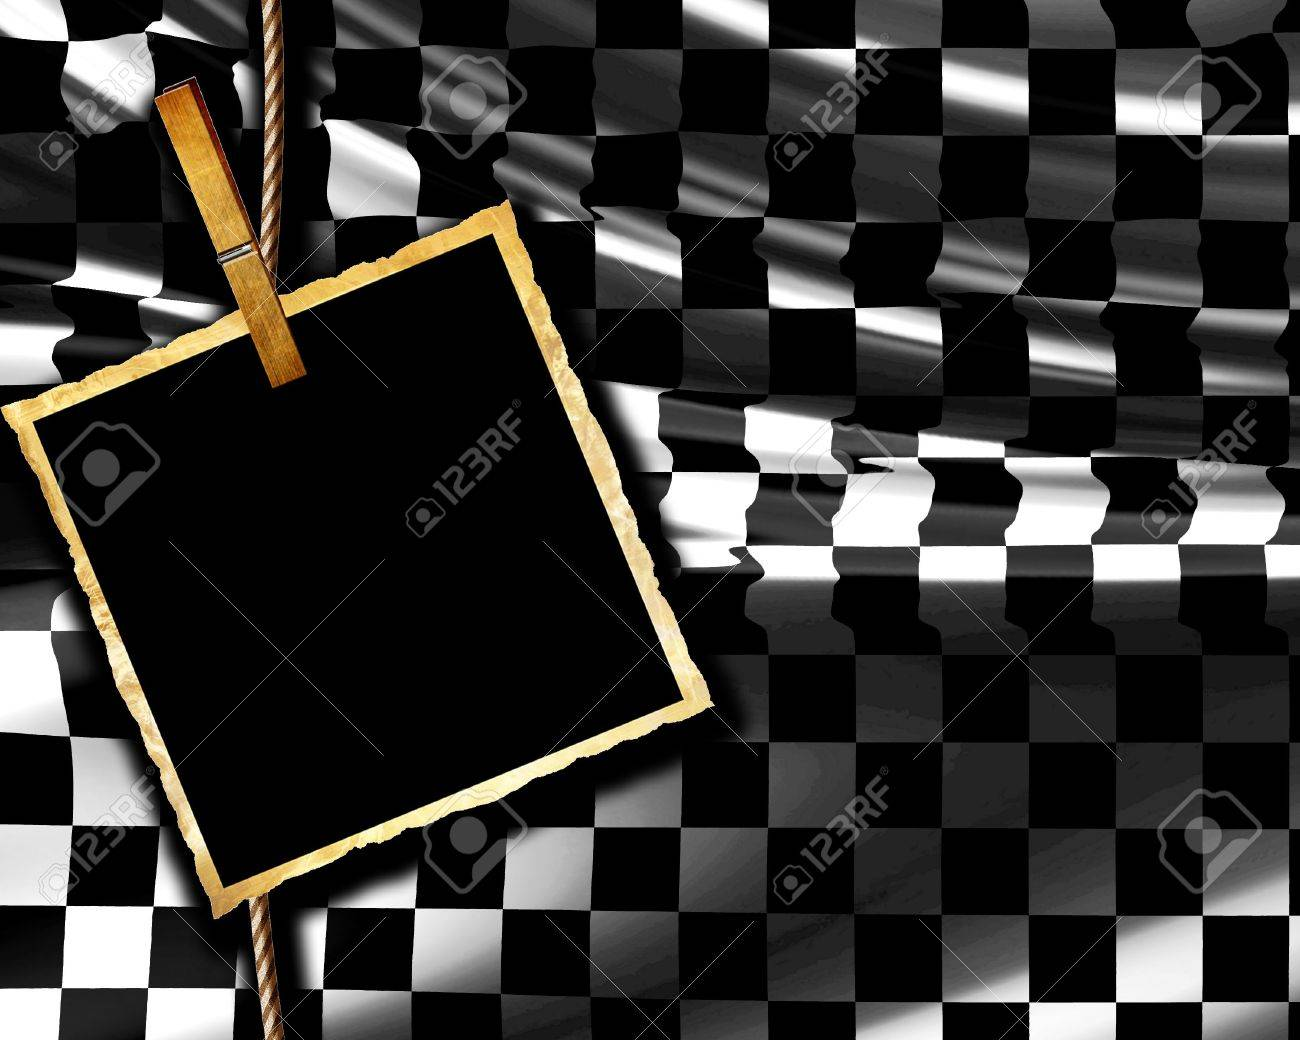 Checkered flag waving in the wind with old picture Stock Photo - 4908004